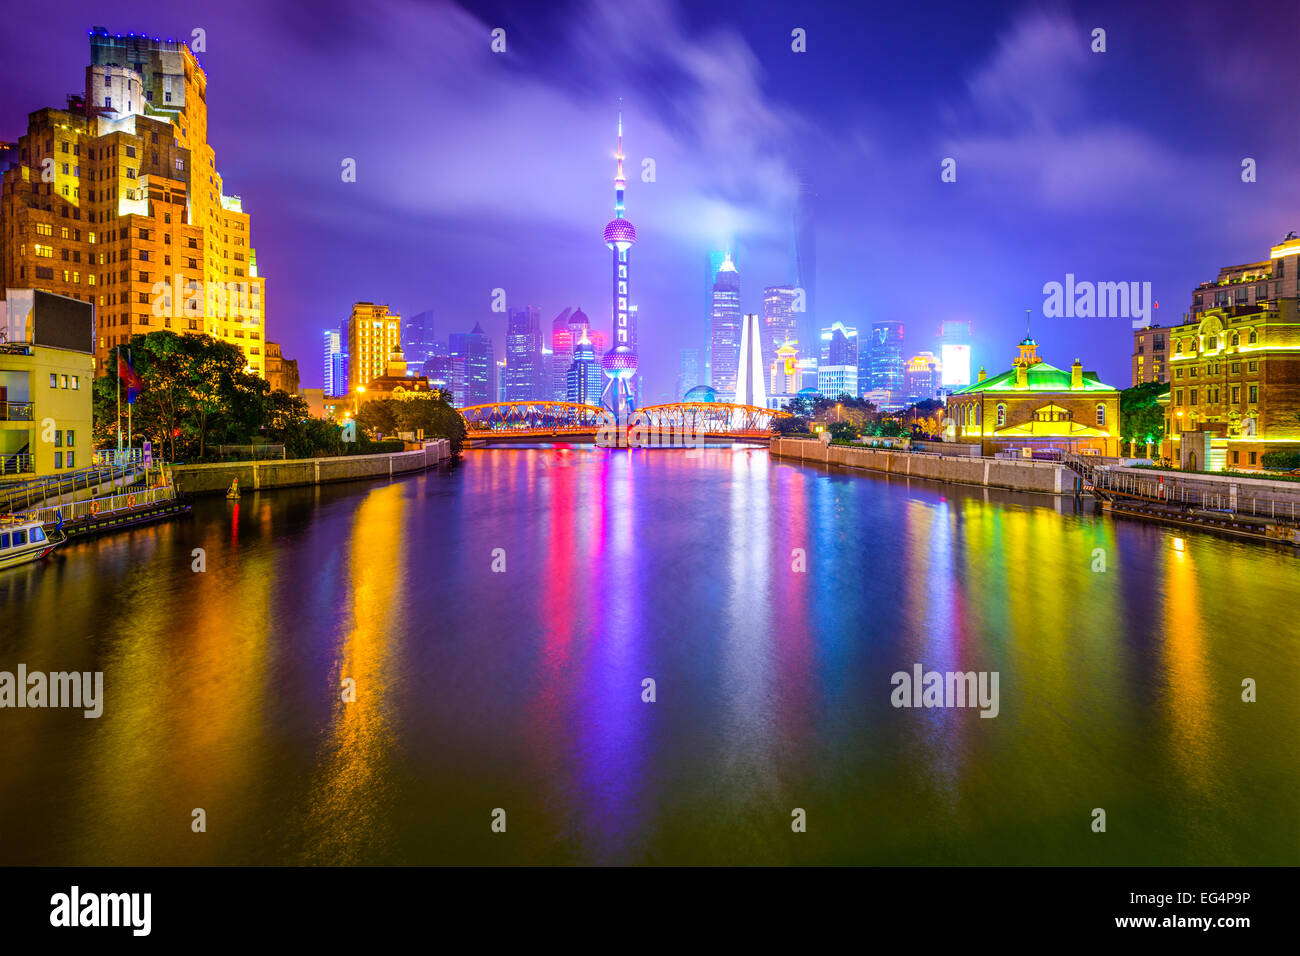 Shanghai, China view of the financial district. - Stock Image